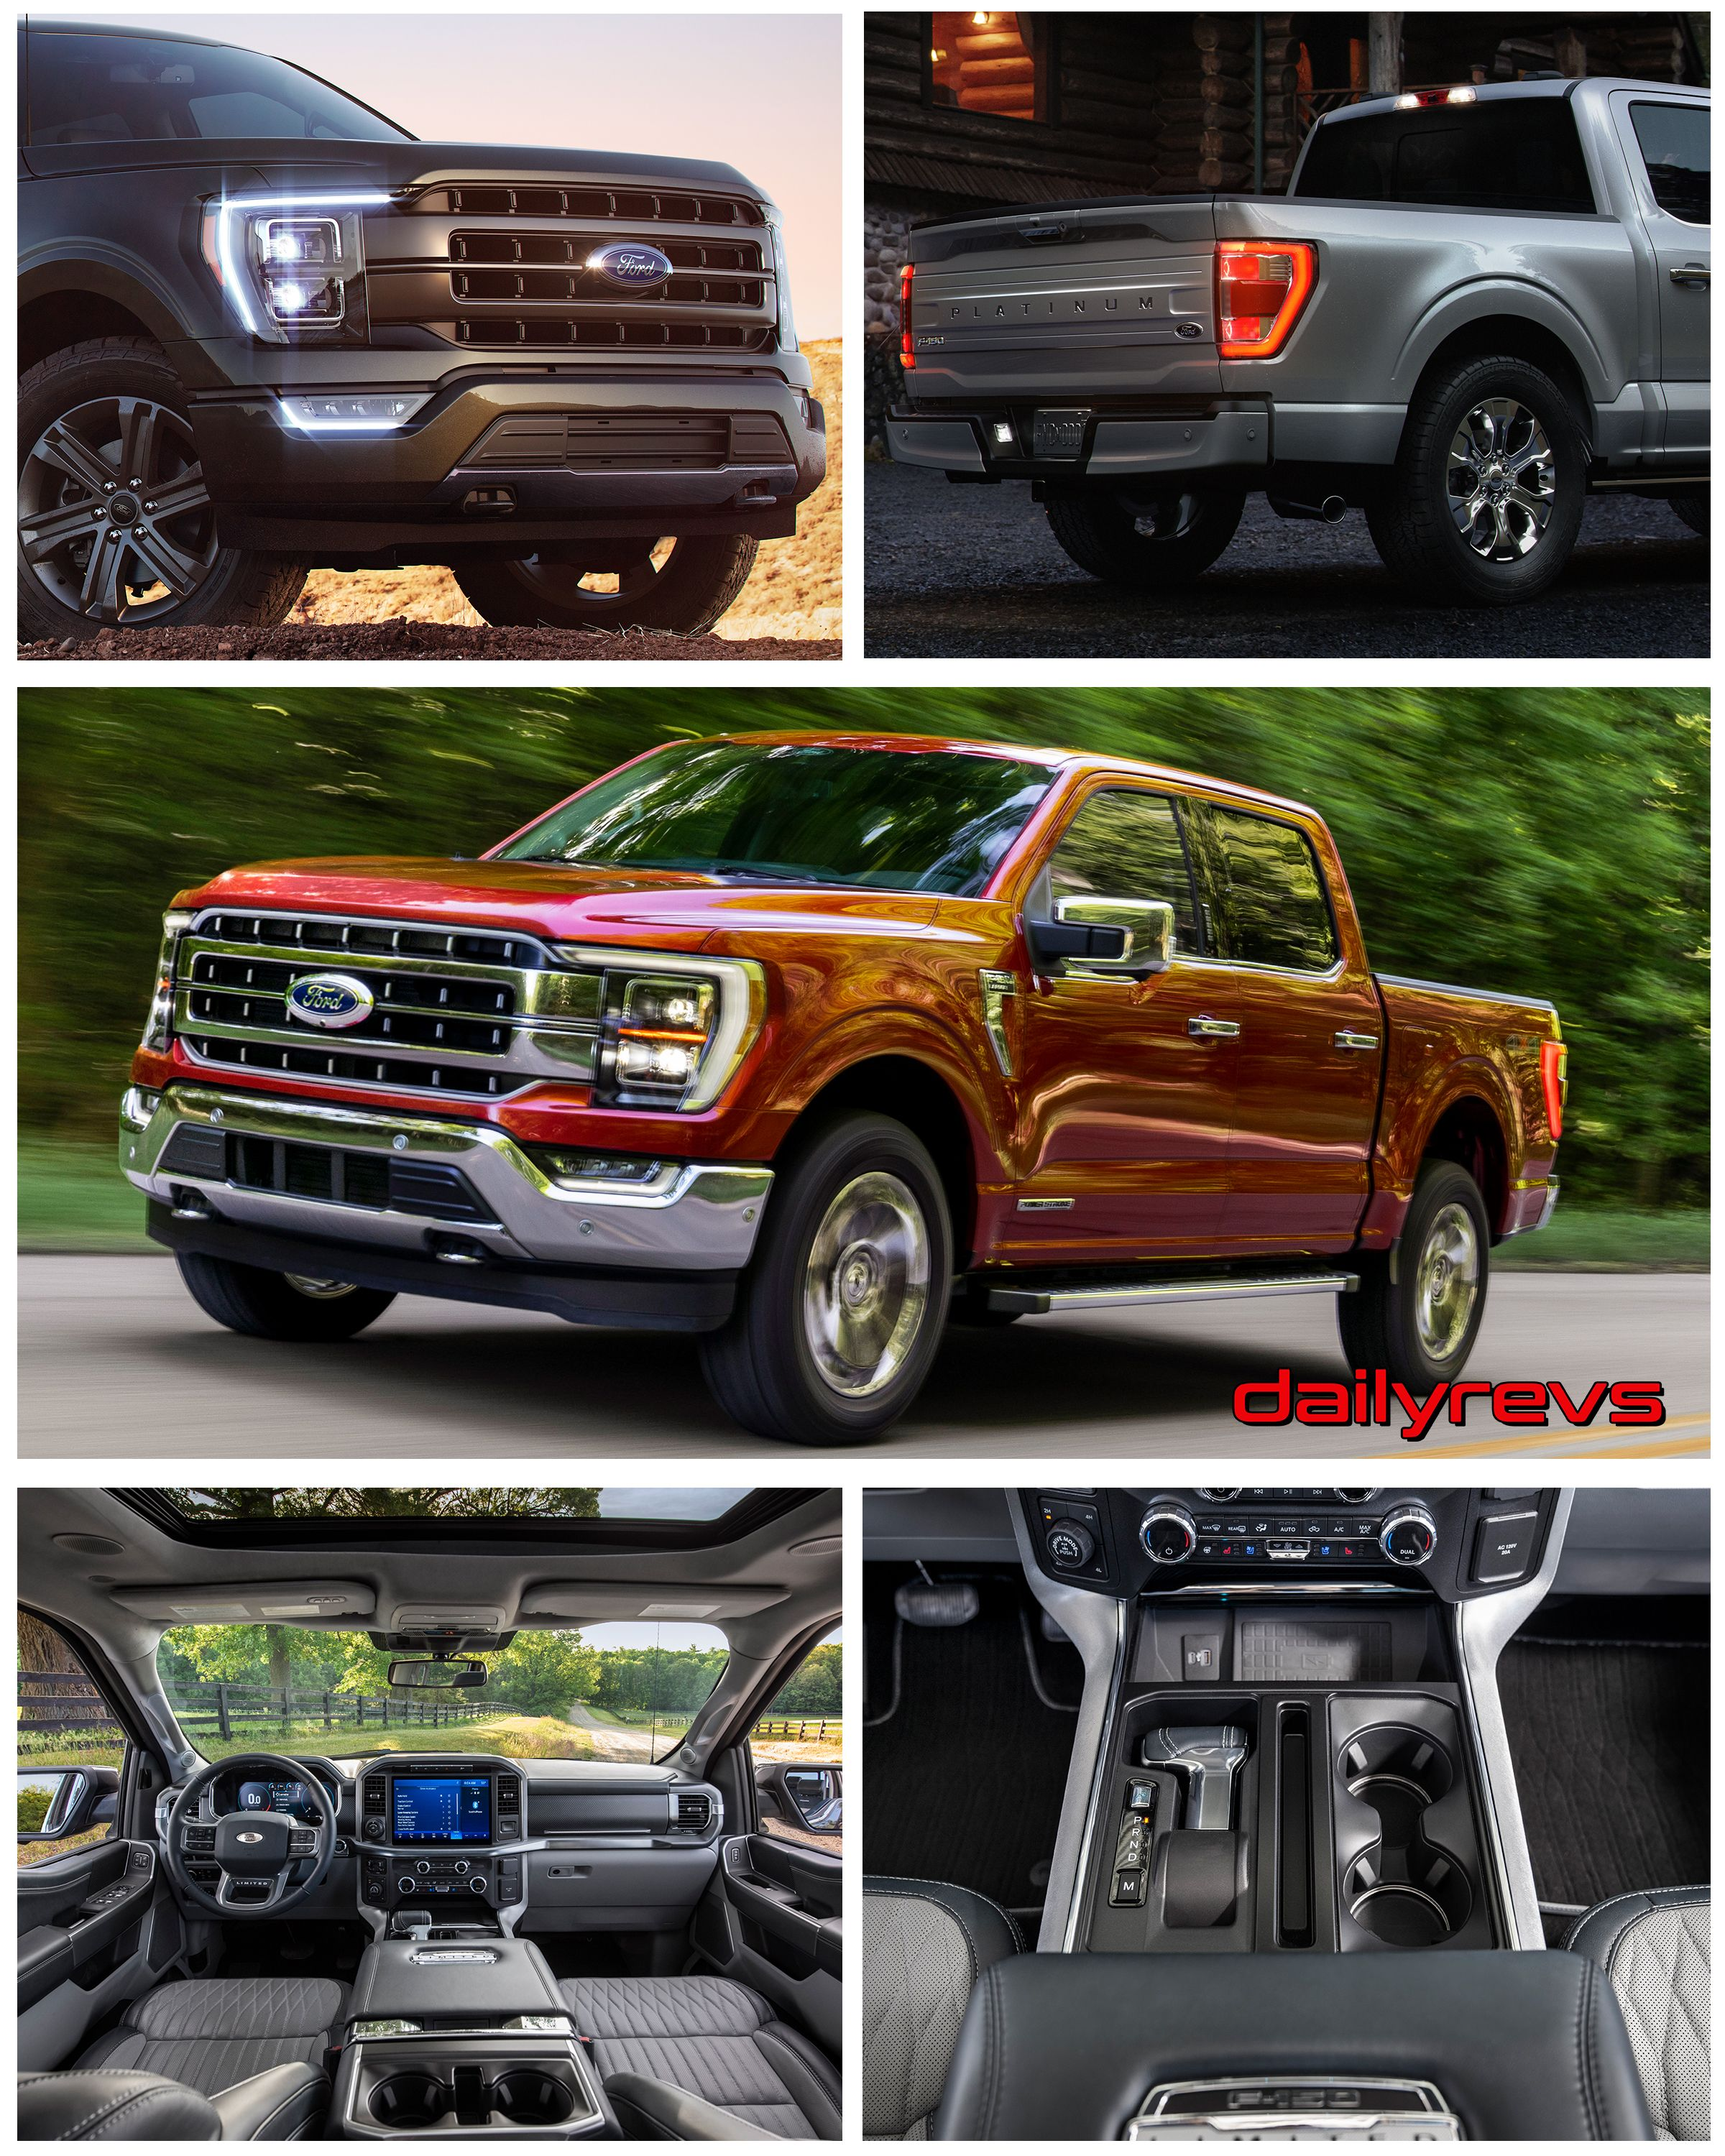 2021 Ford F150 in 2020 Ford f150, Ford